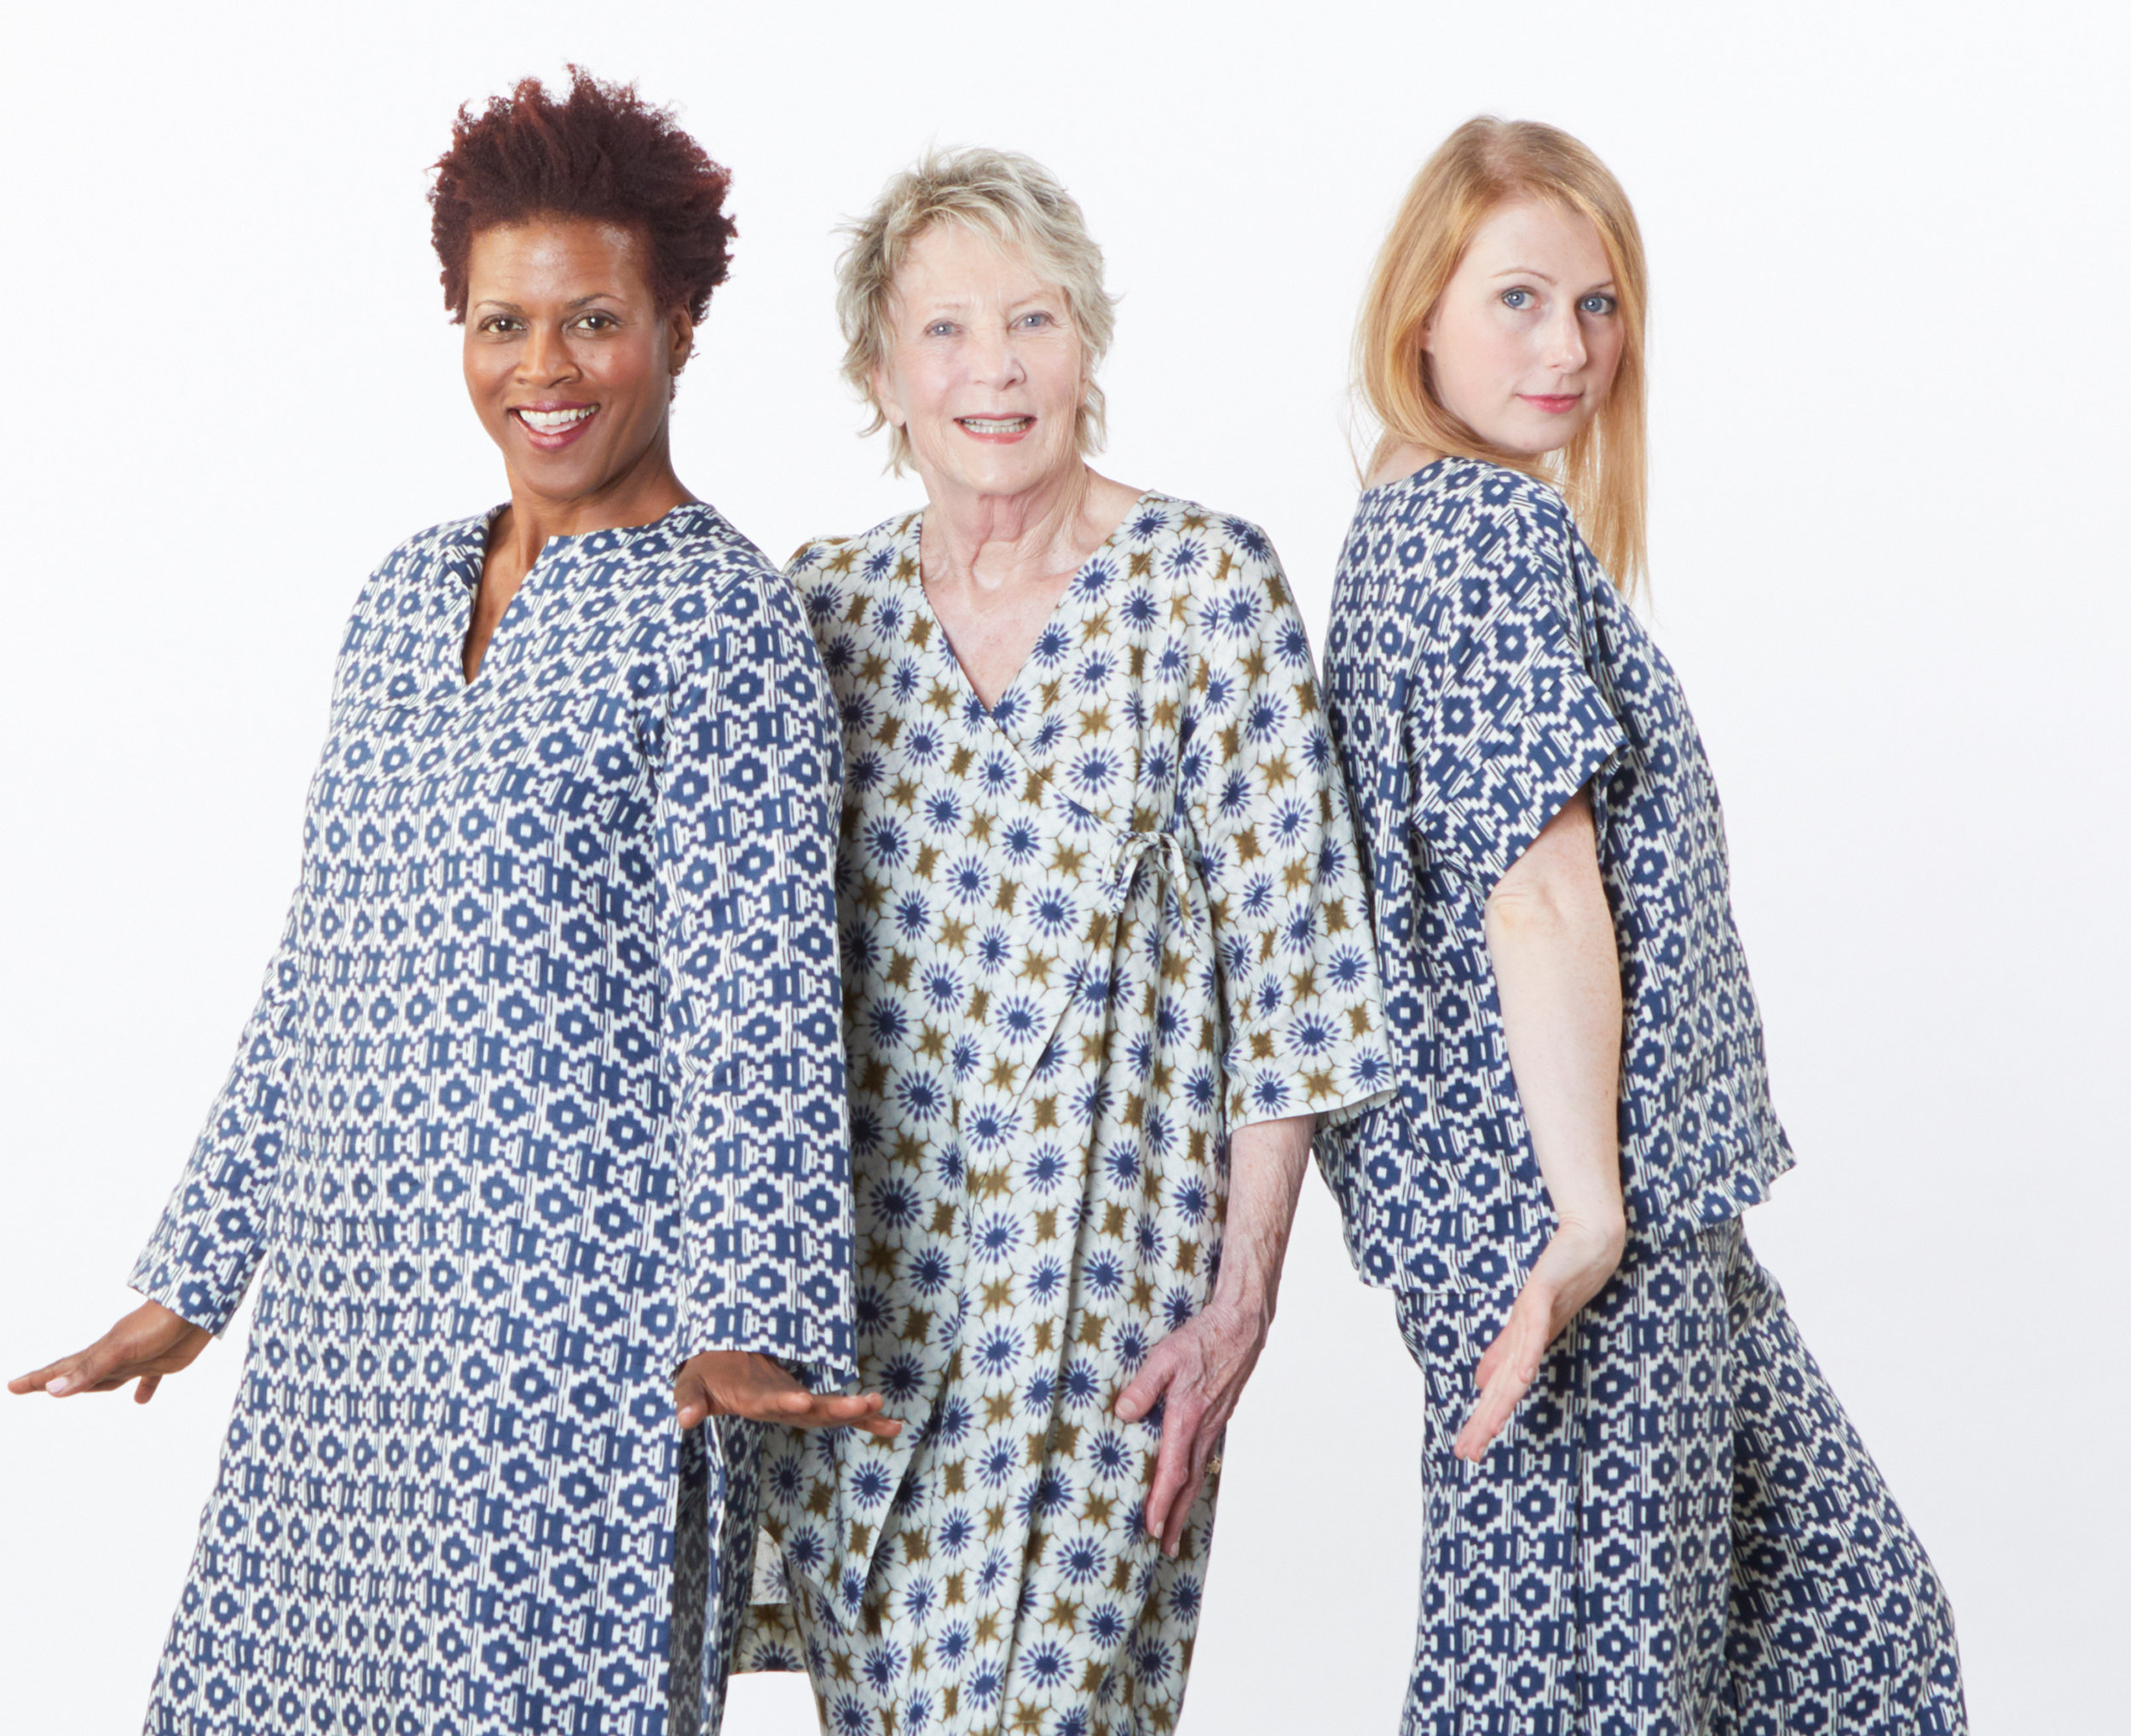 Risa Tunic, Orla Shirt, Bell Pant in Blue/Ivory, Zena Tunic, Bell Pant in Moss/Ivory Italian Print Linen